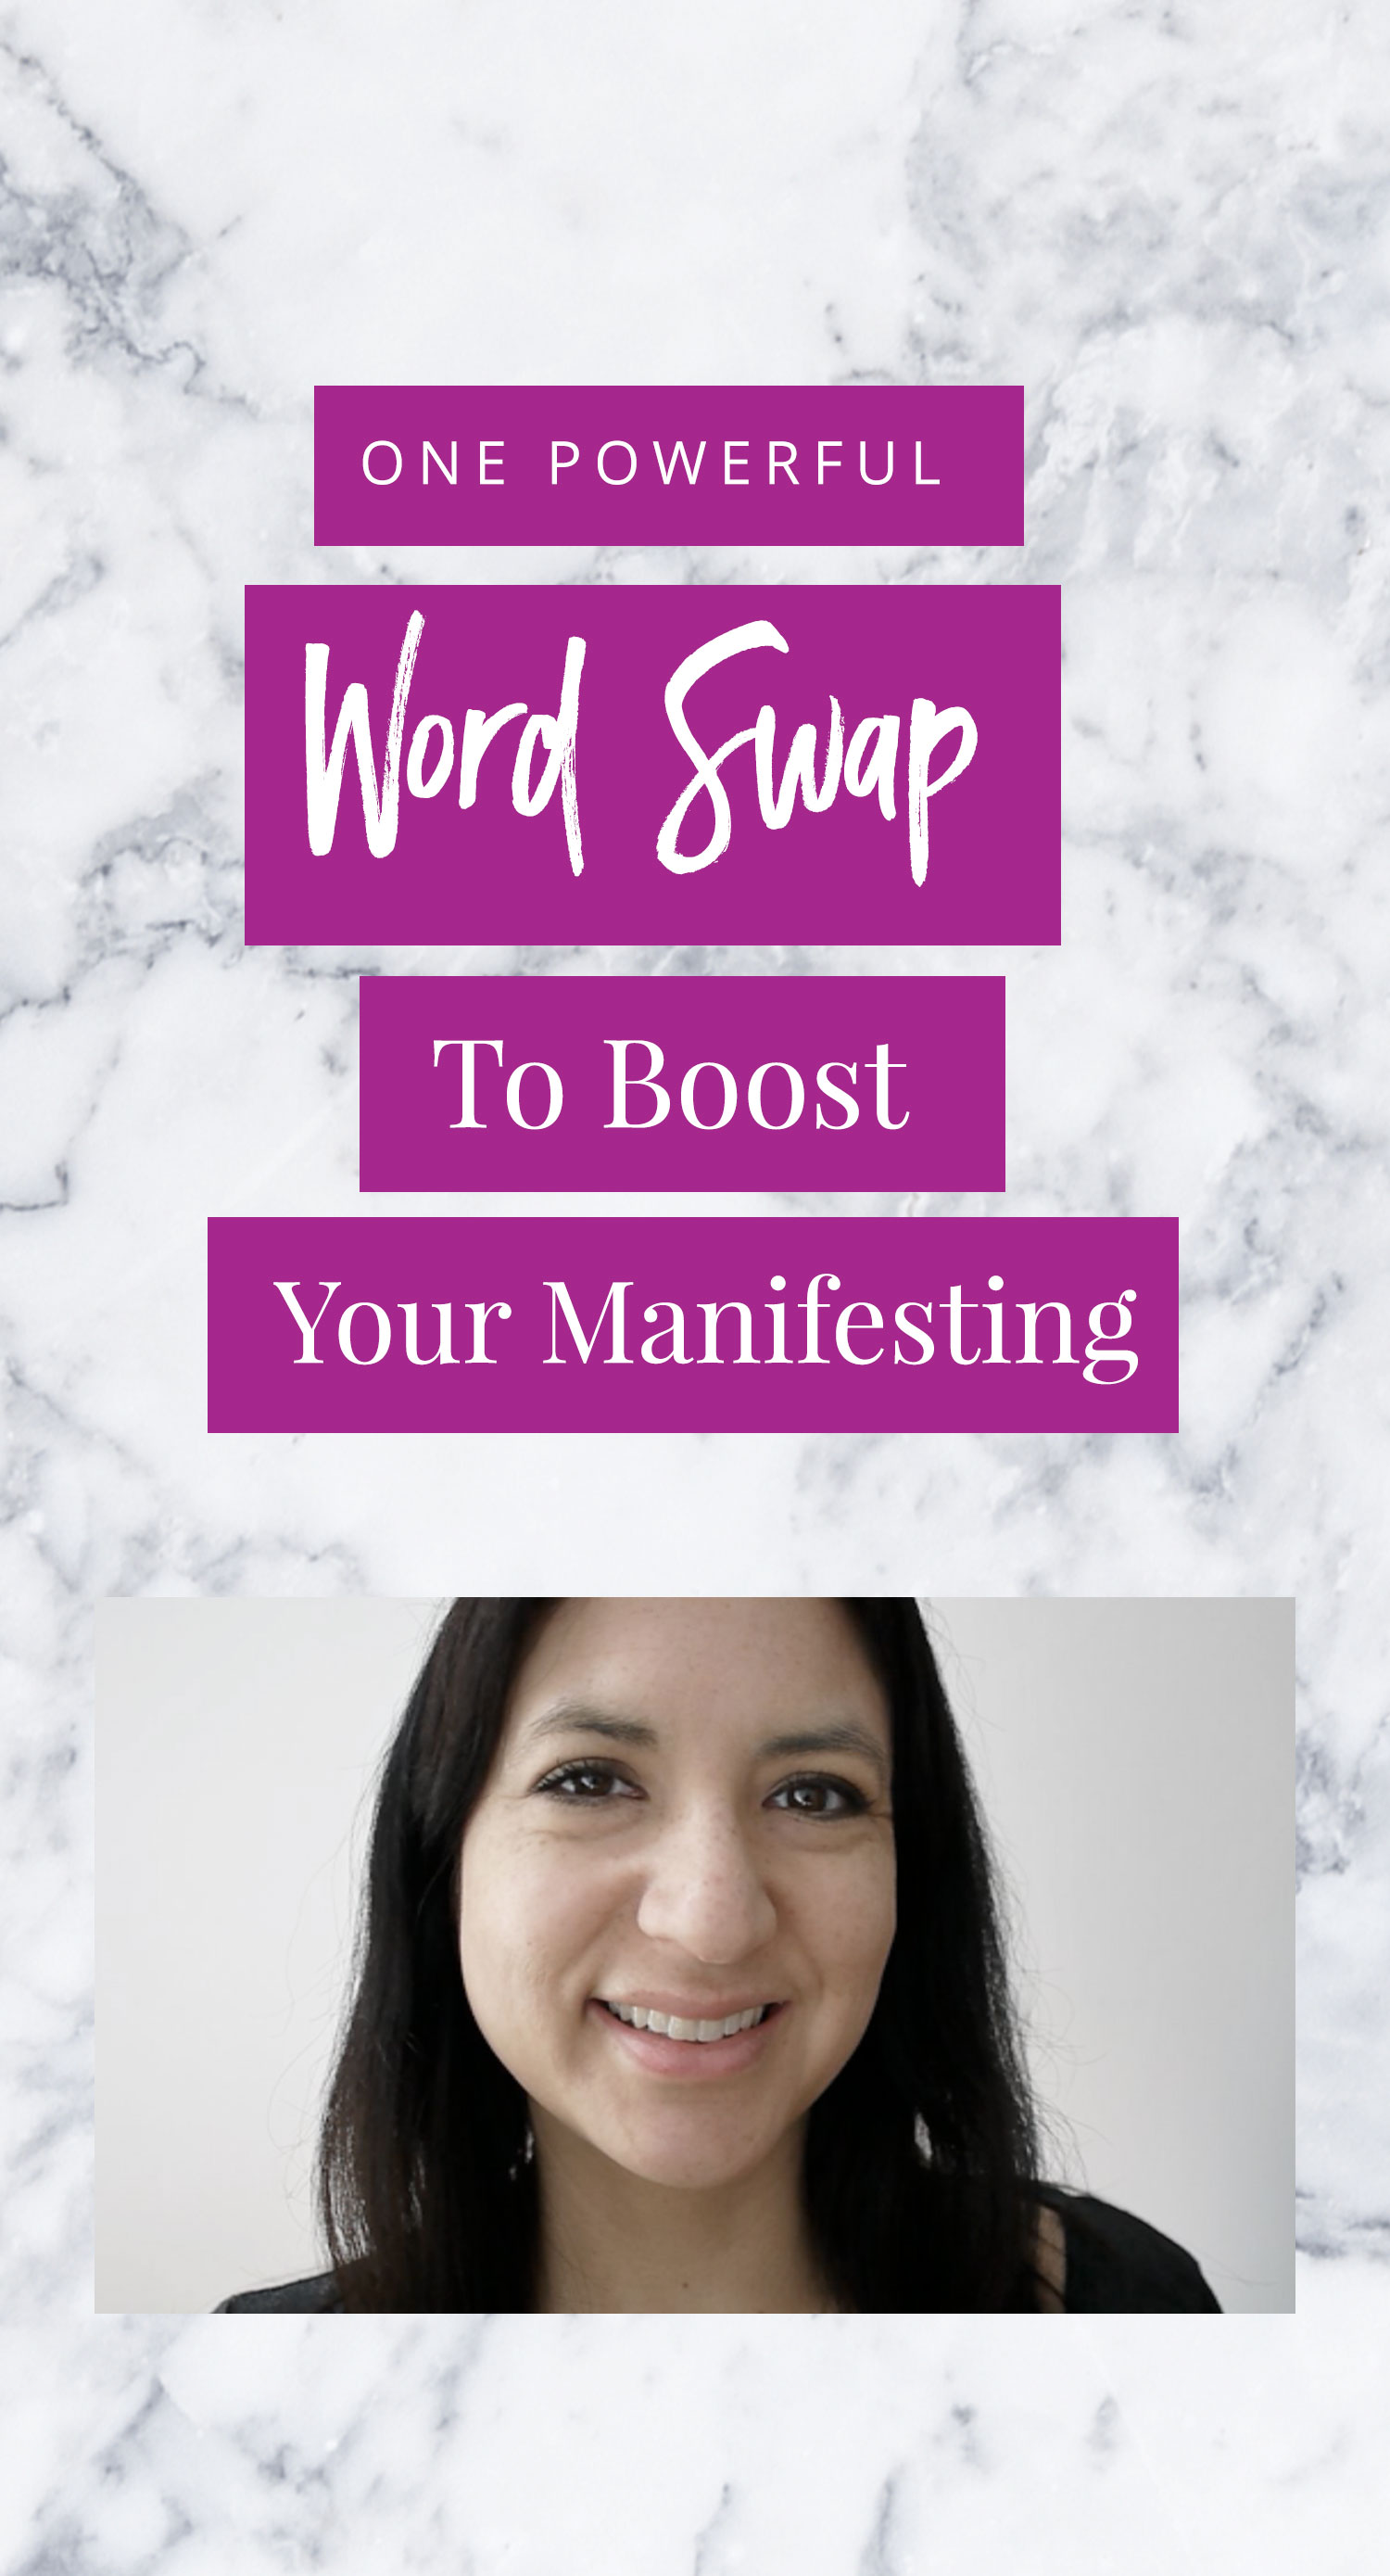 A Powerful Word Swap To Boost Your Manifesting